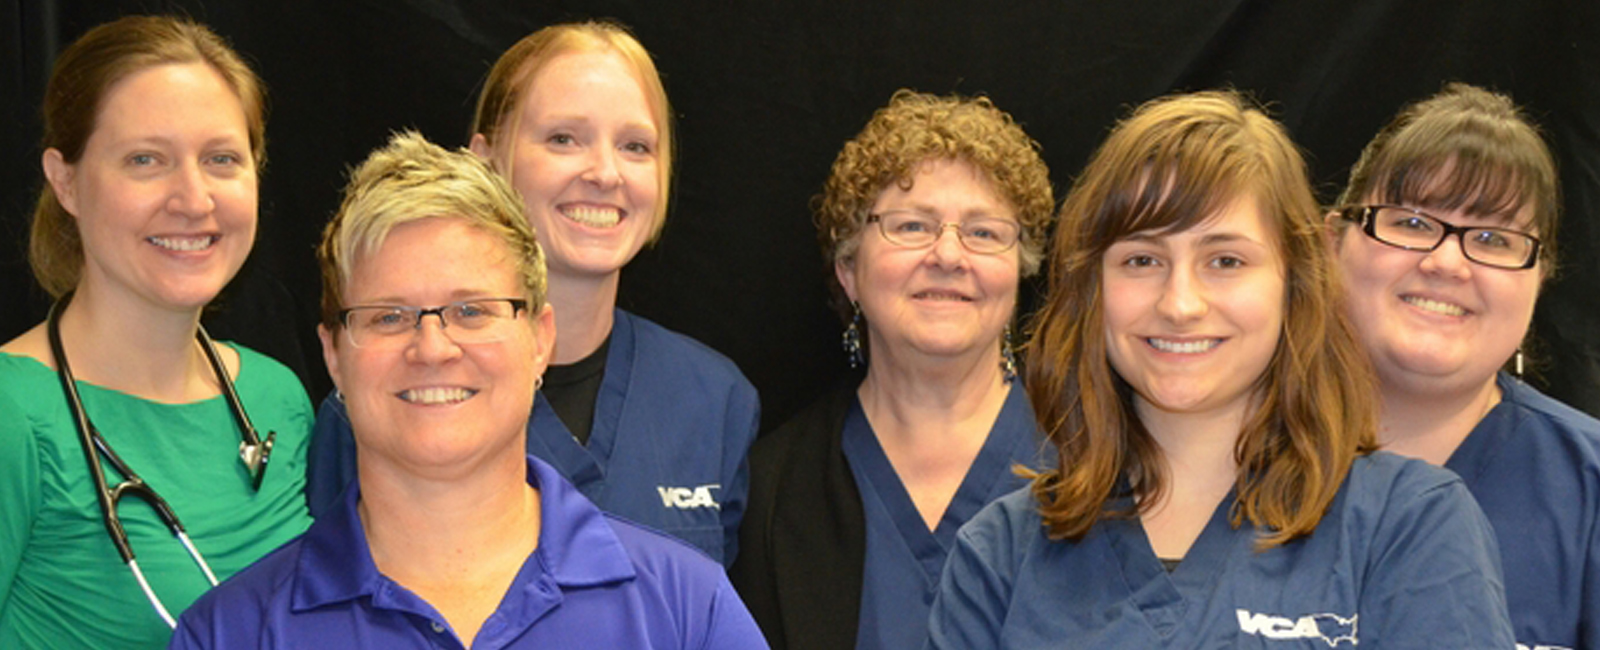 Homepage Team Picture of VCA Clackamas Animal Hospital